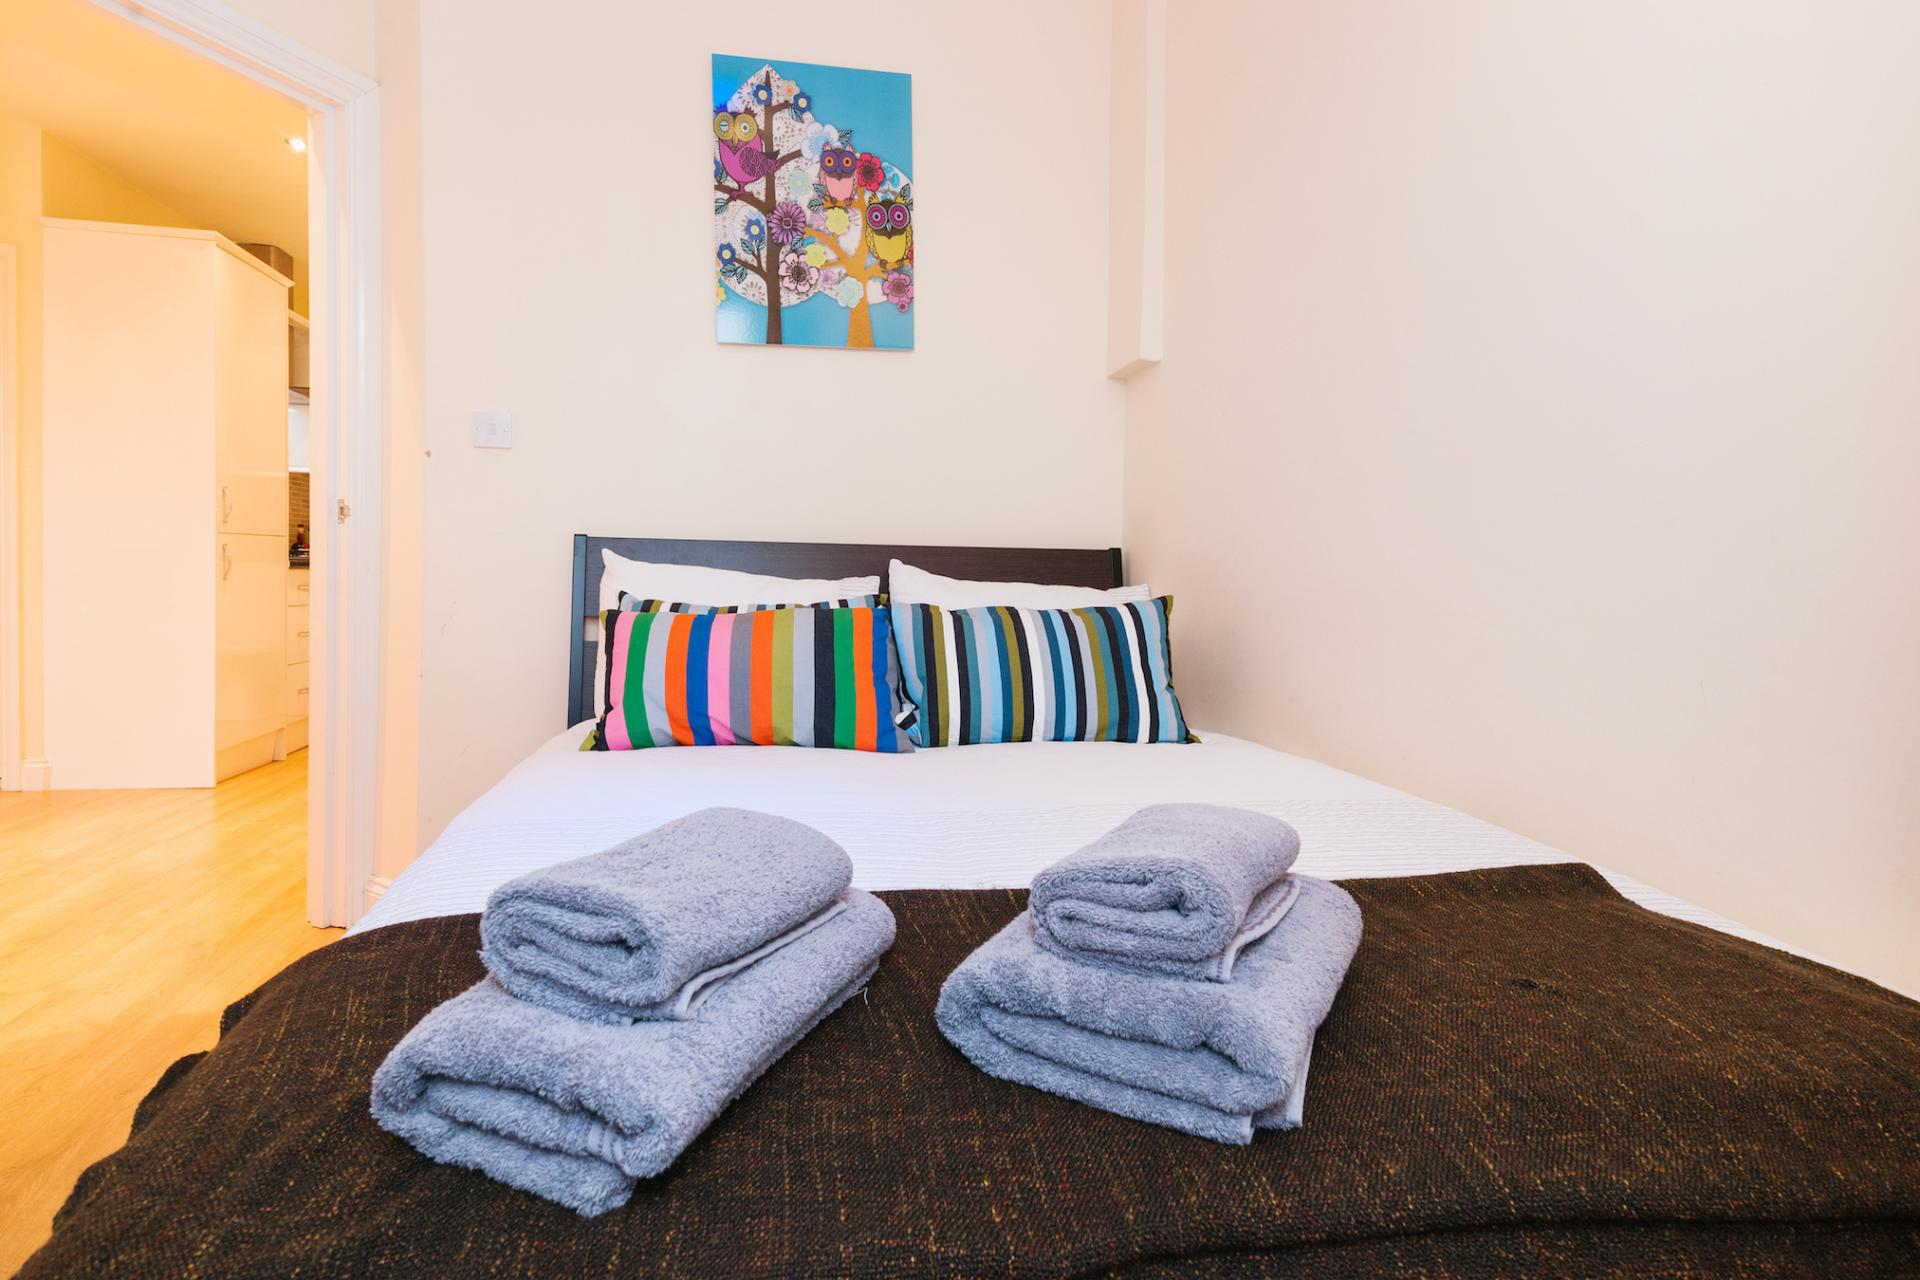 Bedroom at Kings Cross Corporate Accommodation